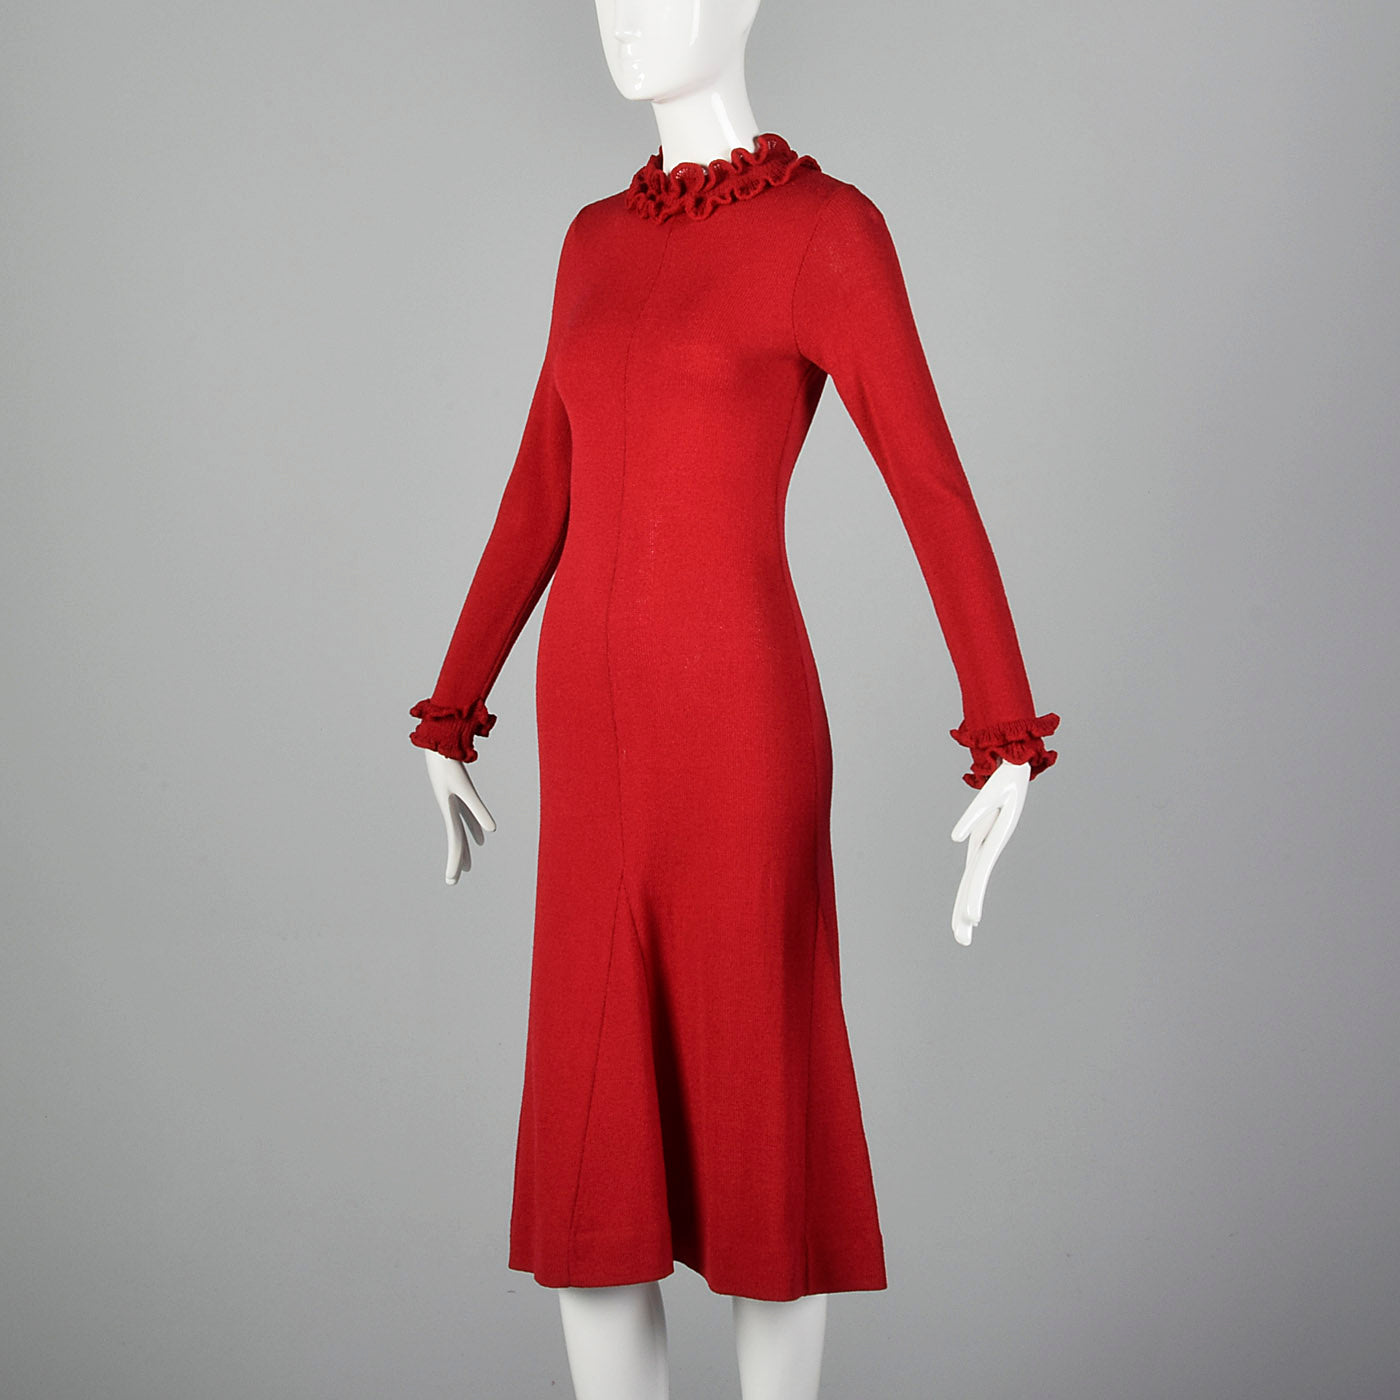 1970s Red Knit Sweater Dress